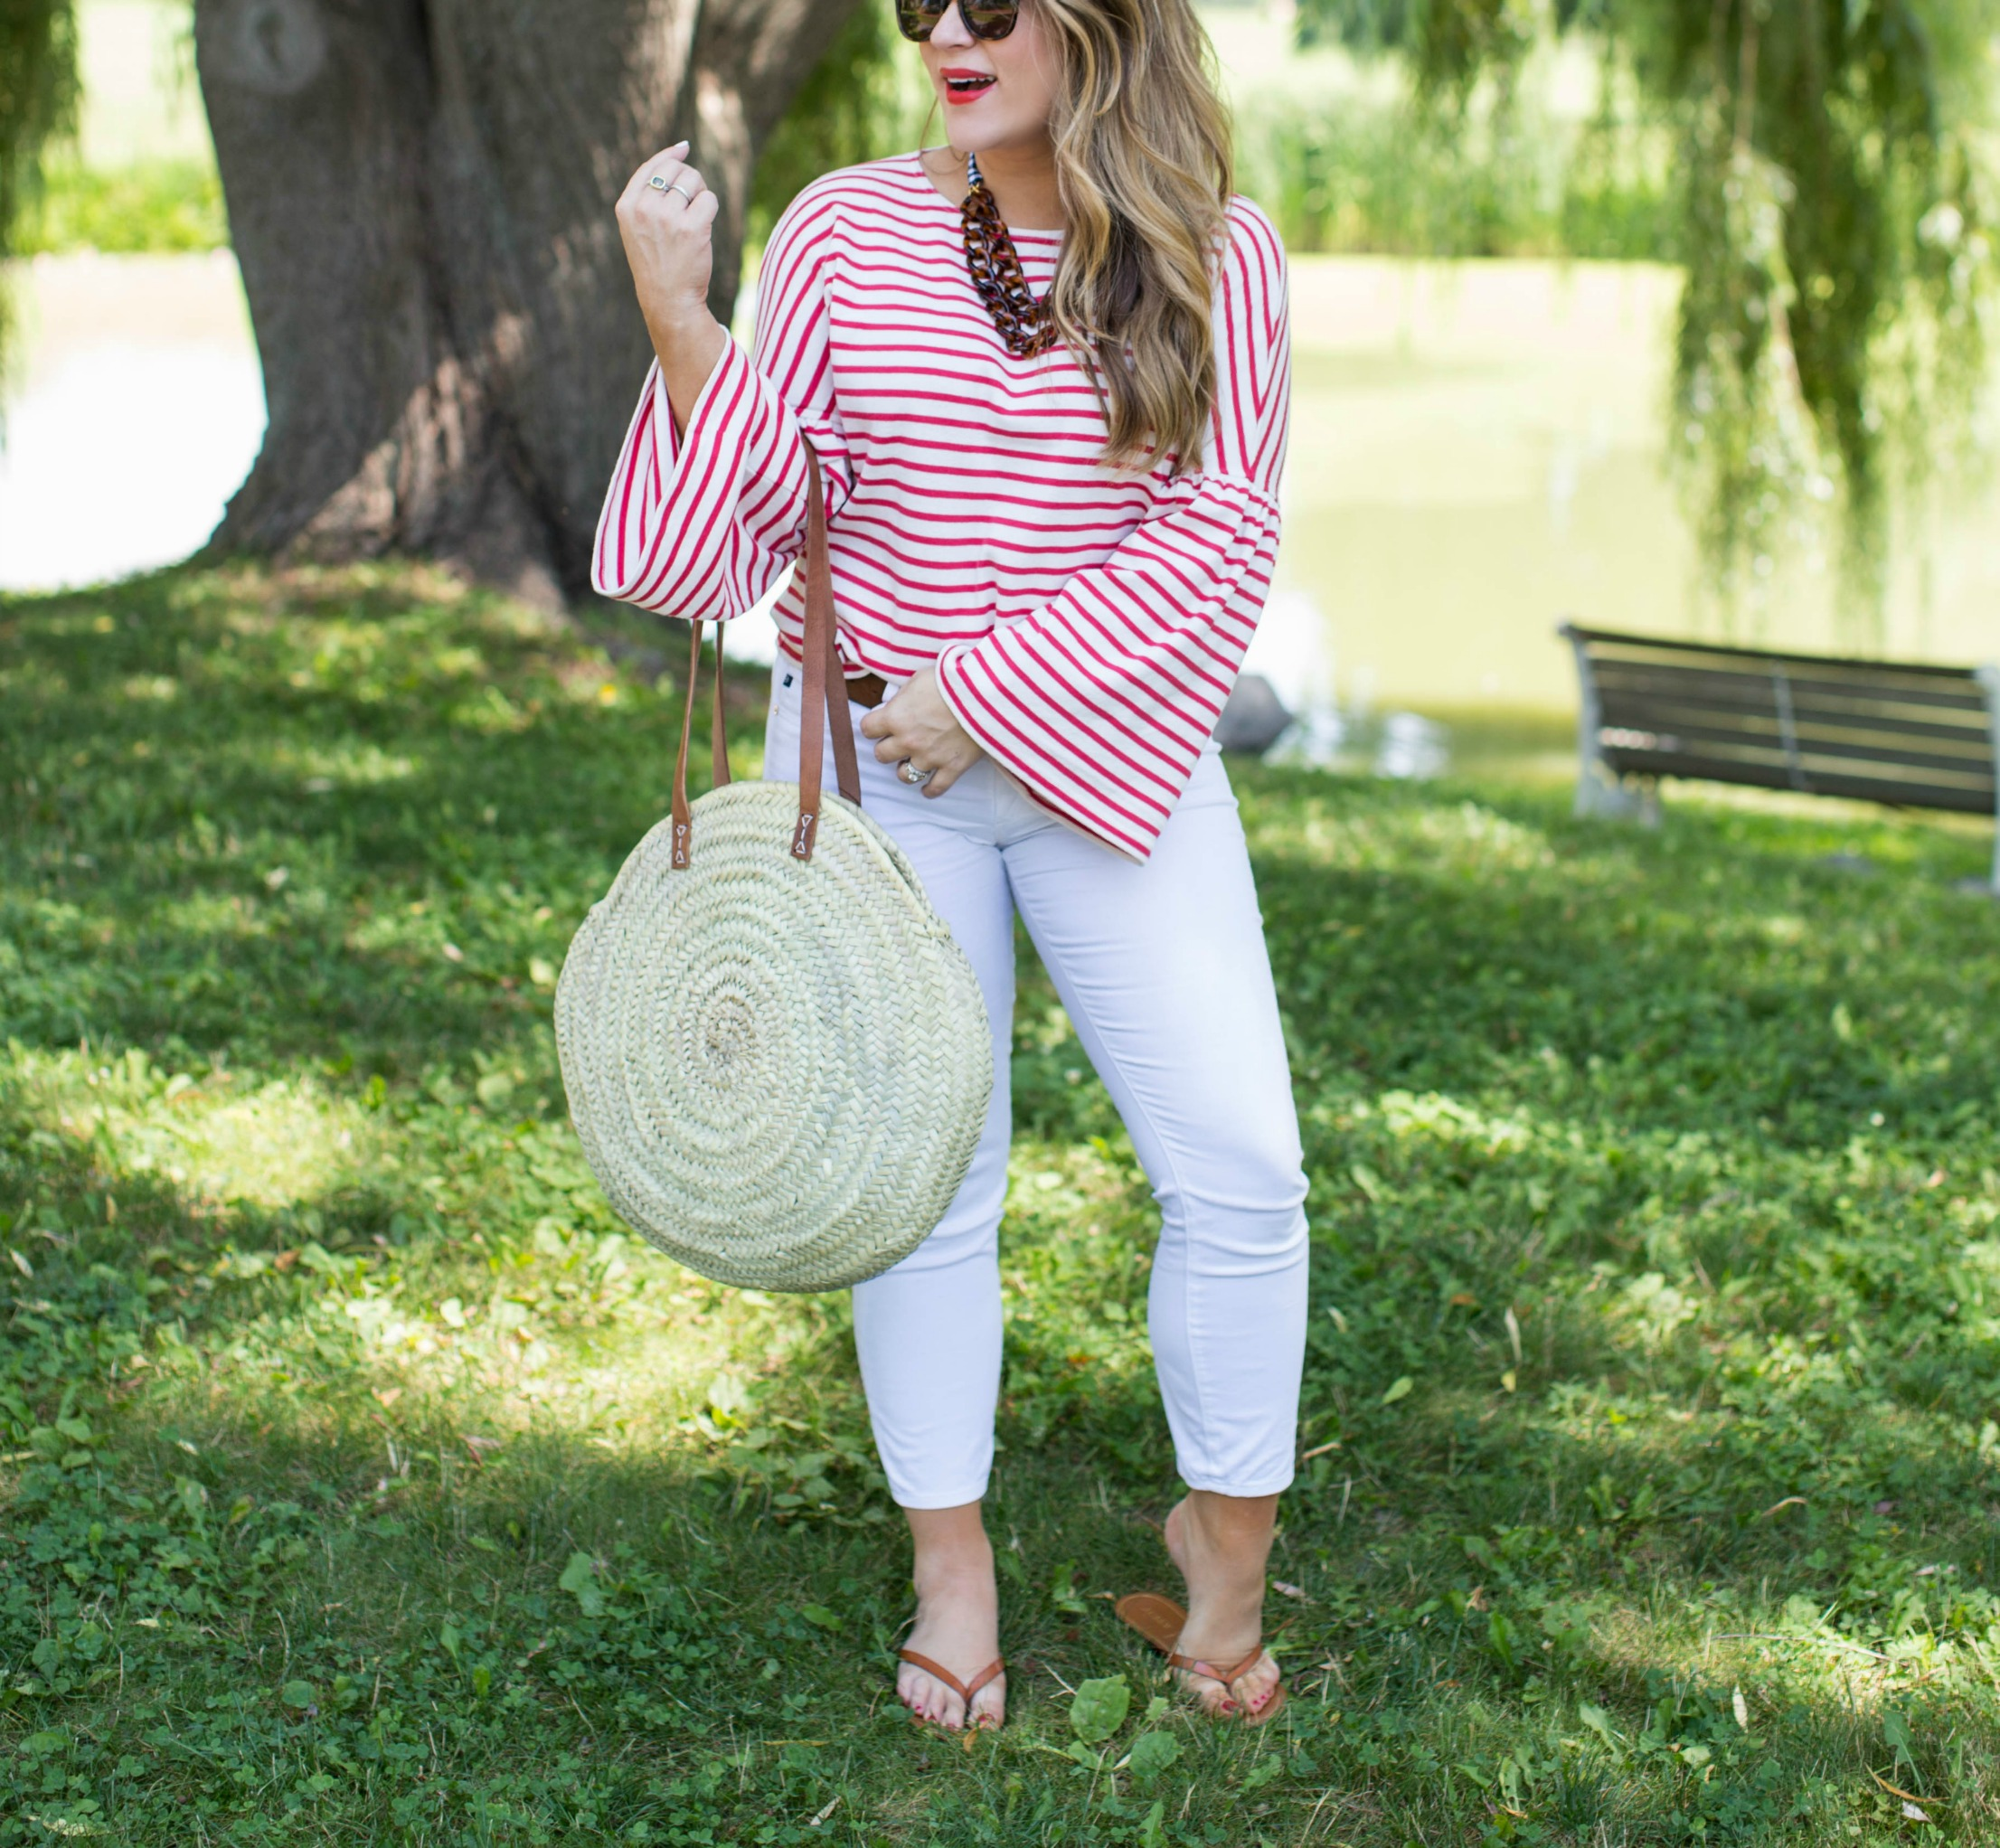 Vacation Outfits at MacKenzie-Childs by NC fashion blogger Coffee Beans and Bobby Pins